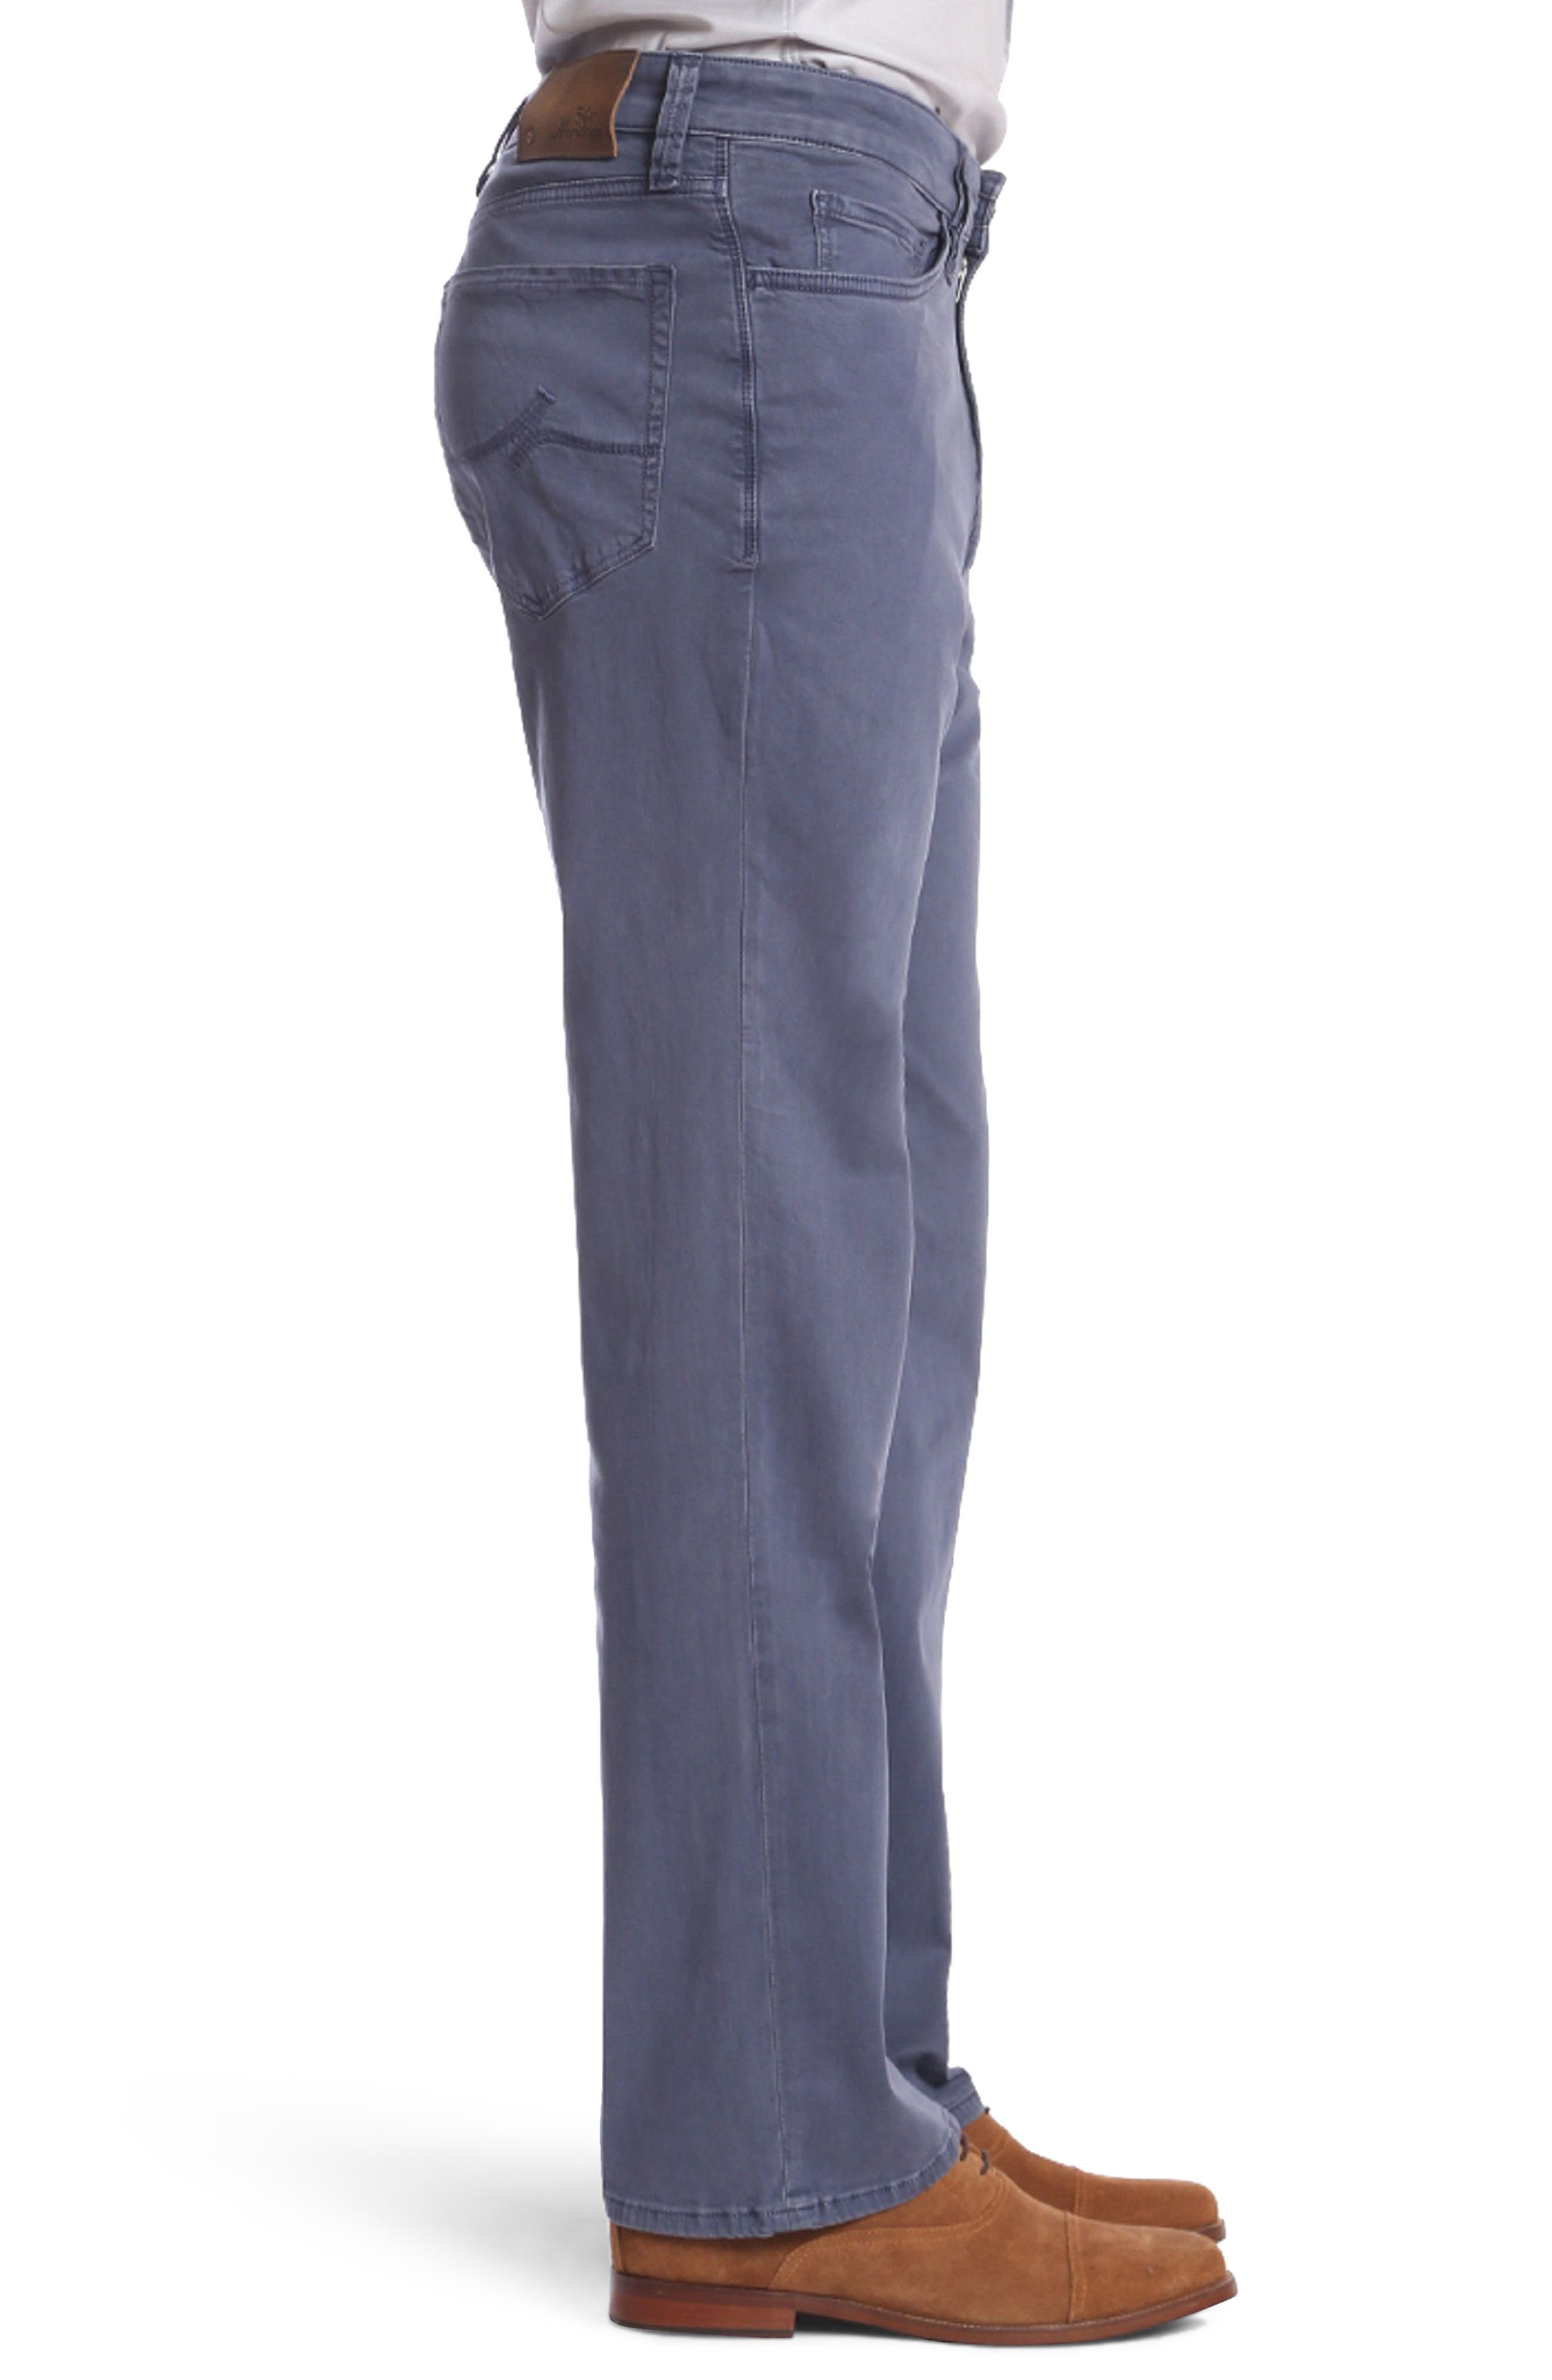 Charisma Relaxed Fit Jeans,                             Alternate thumbnail 3, color,                             Horizon Twill